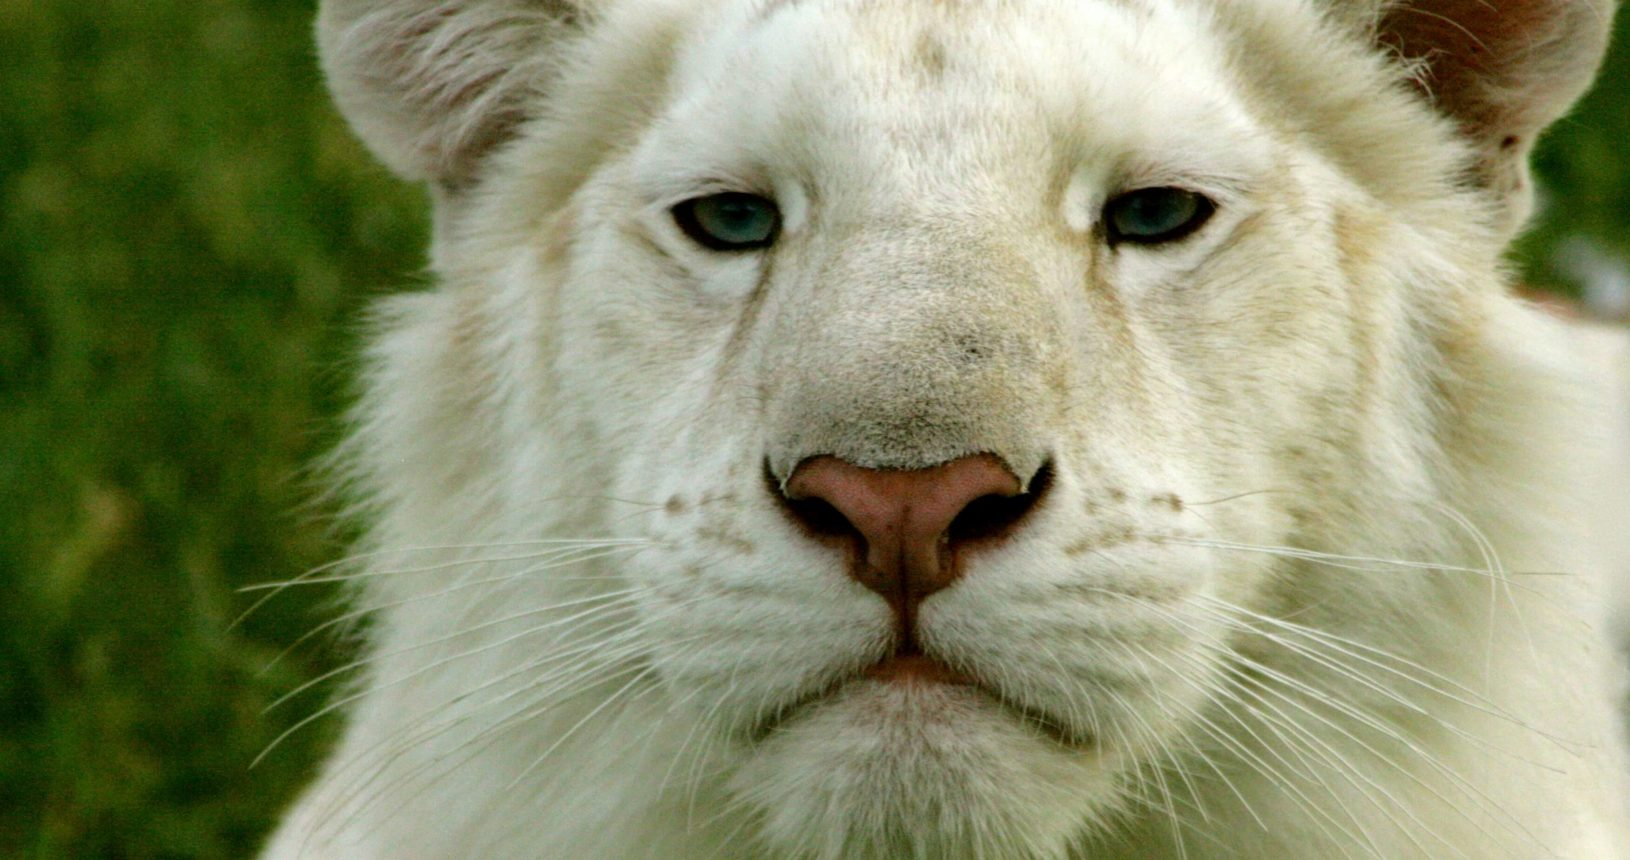 Close-up of Sugar, the white tiger.